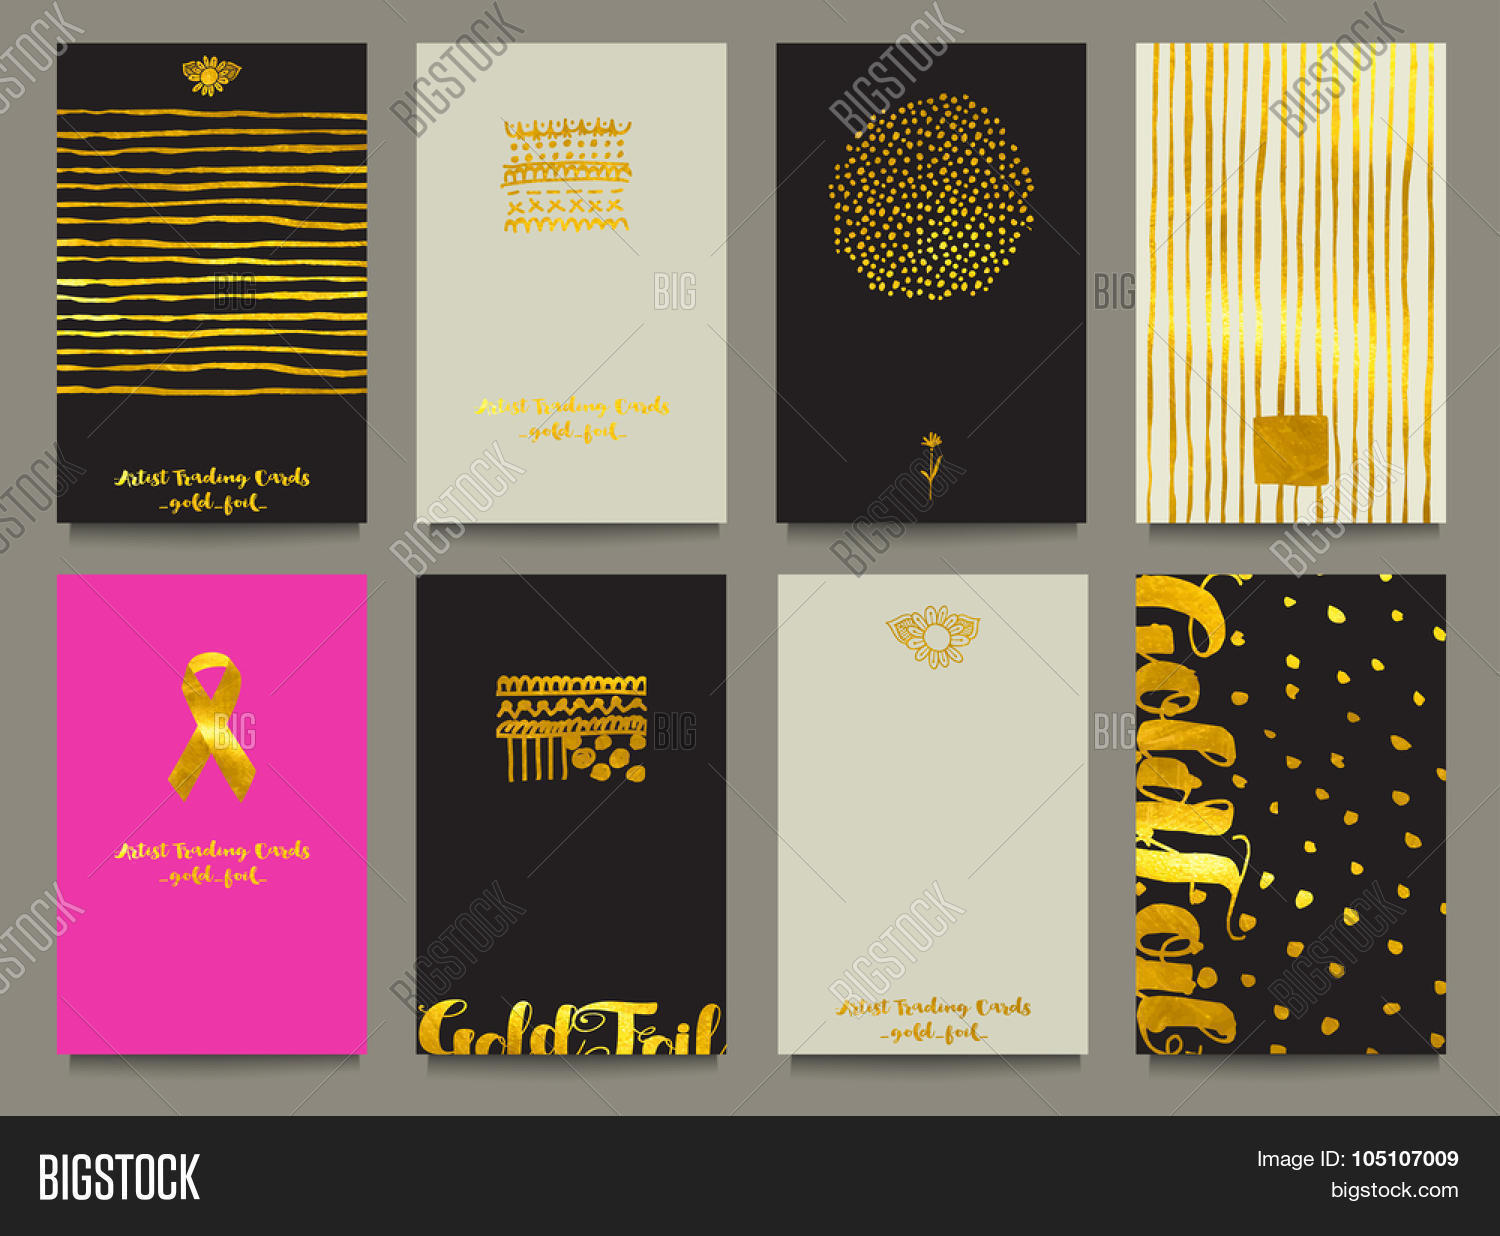 Gold Foil Business Cards Artist Vector & Photo | Bigstock